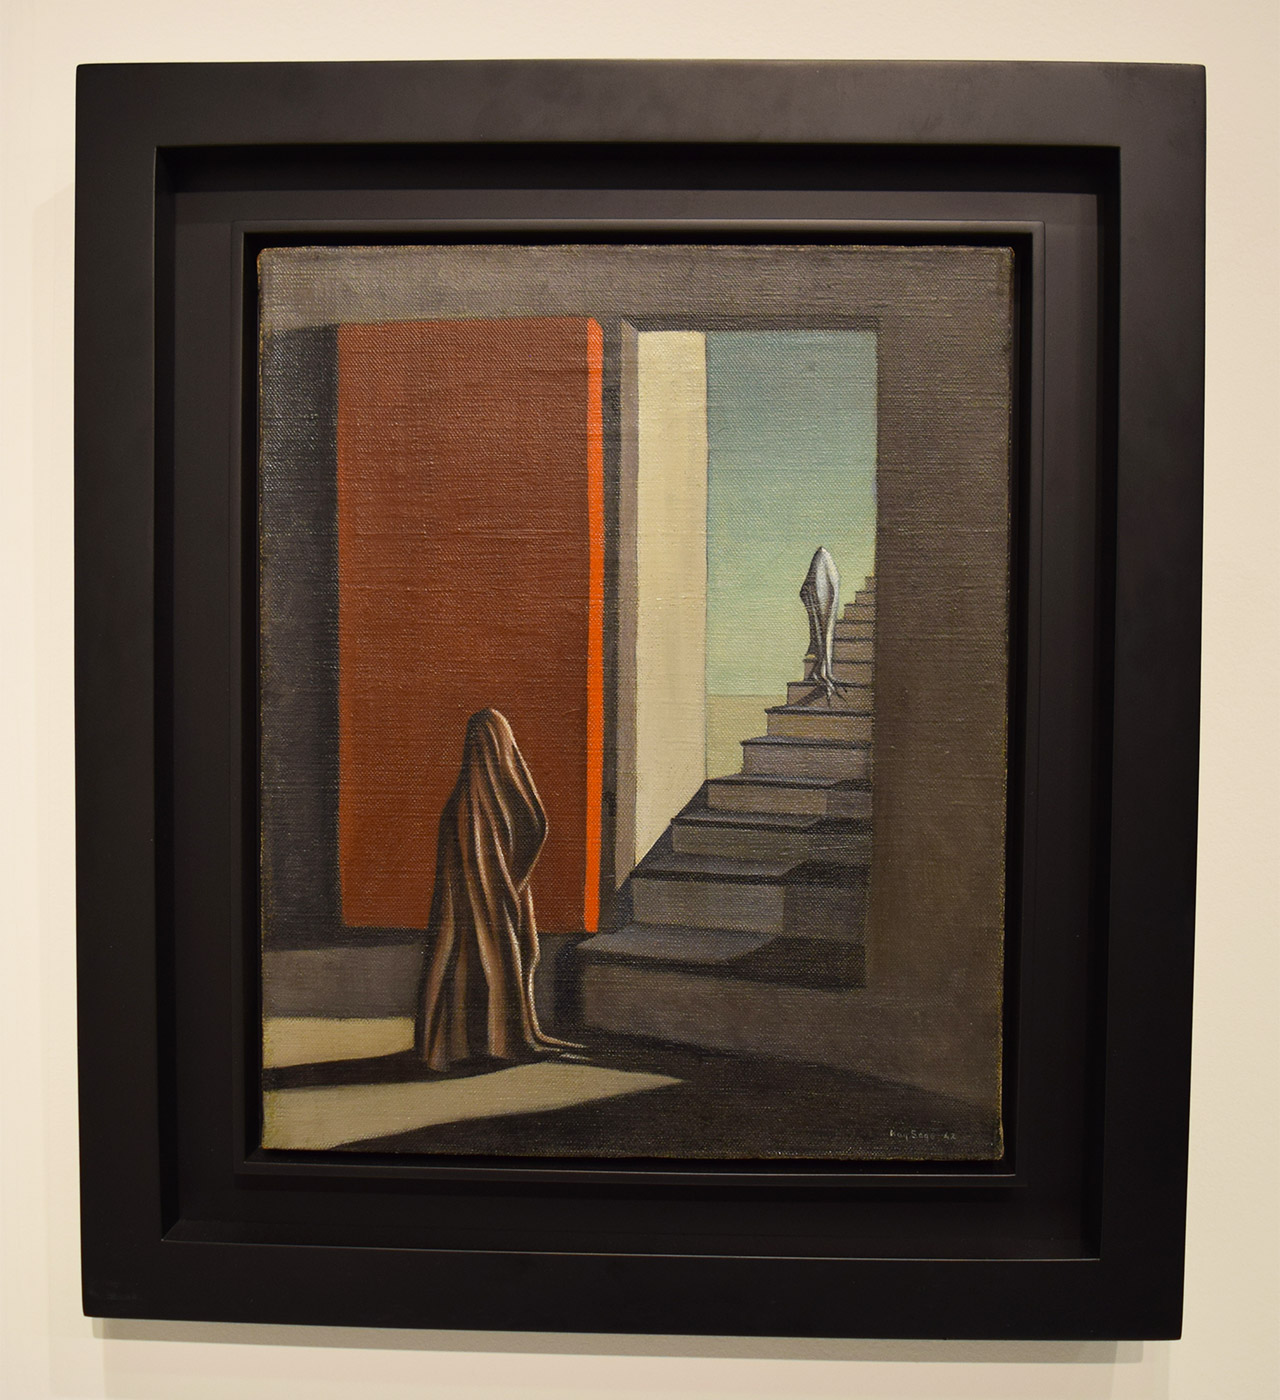 """Kay Sage, """"The Fourteen Daggers"""" (ca. 1942) in the Michael Rosenfeld Gallery booth at the 2016 Armory Show"""